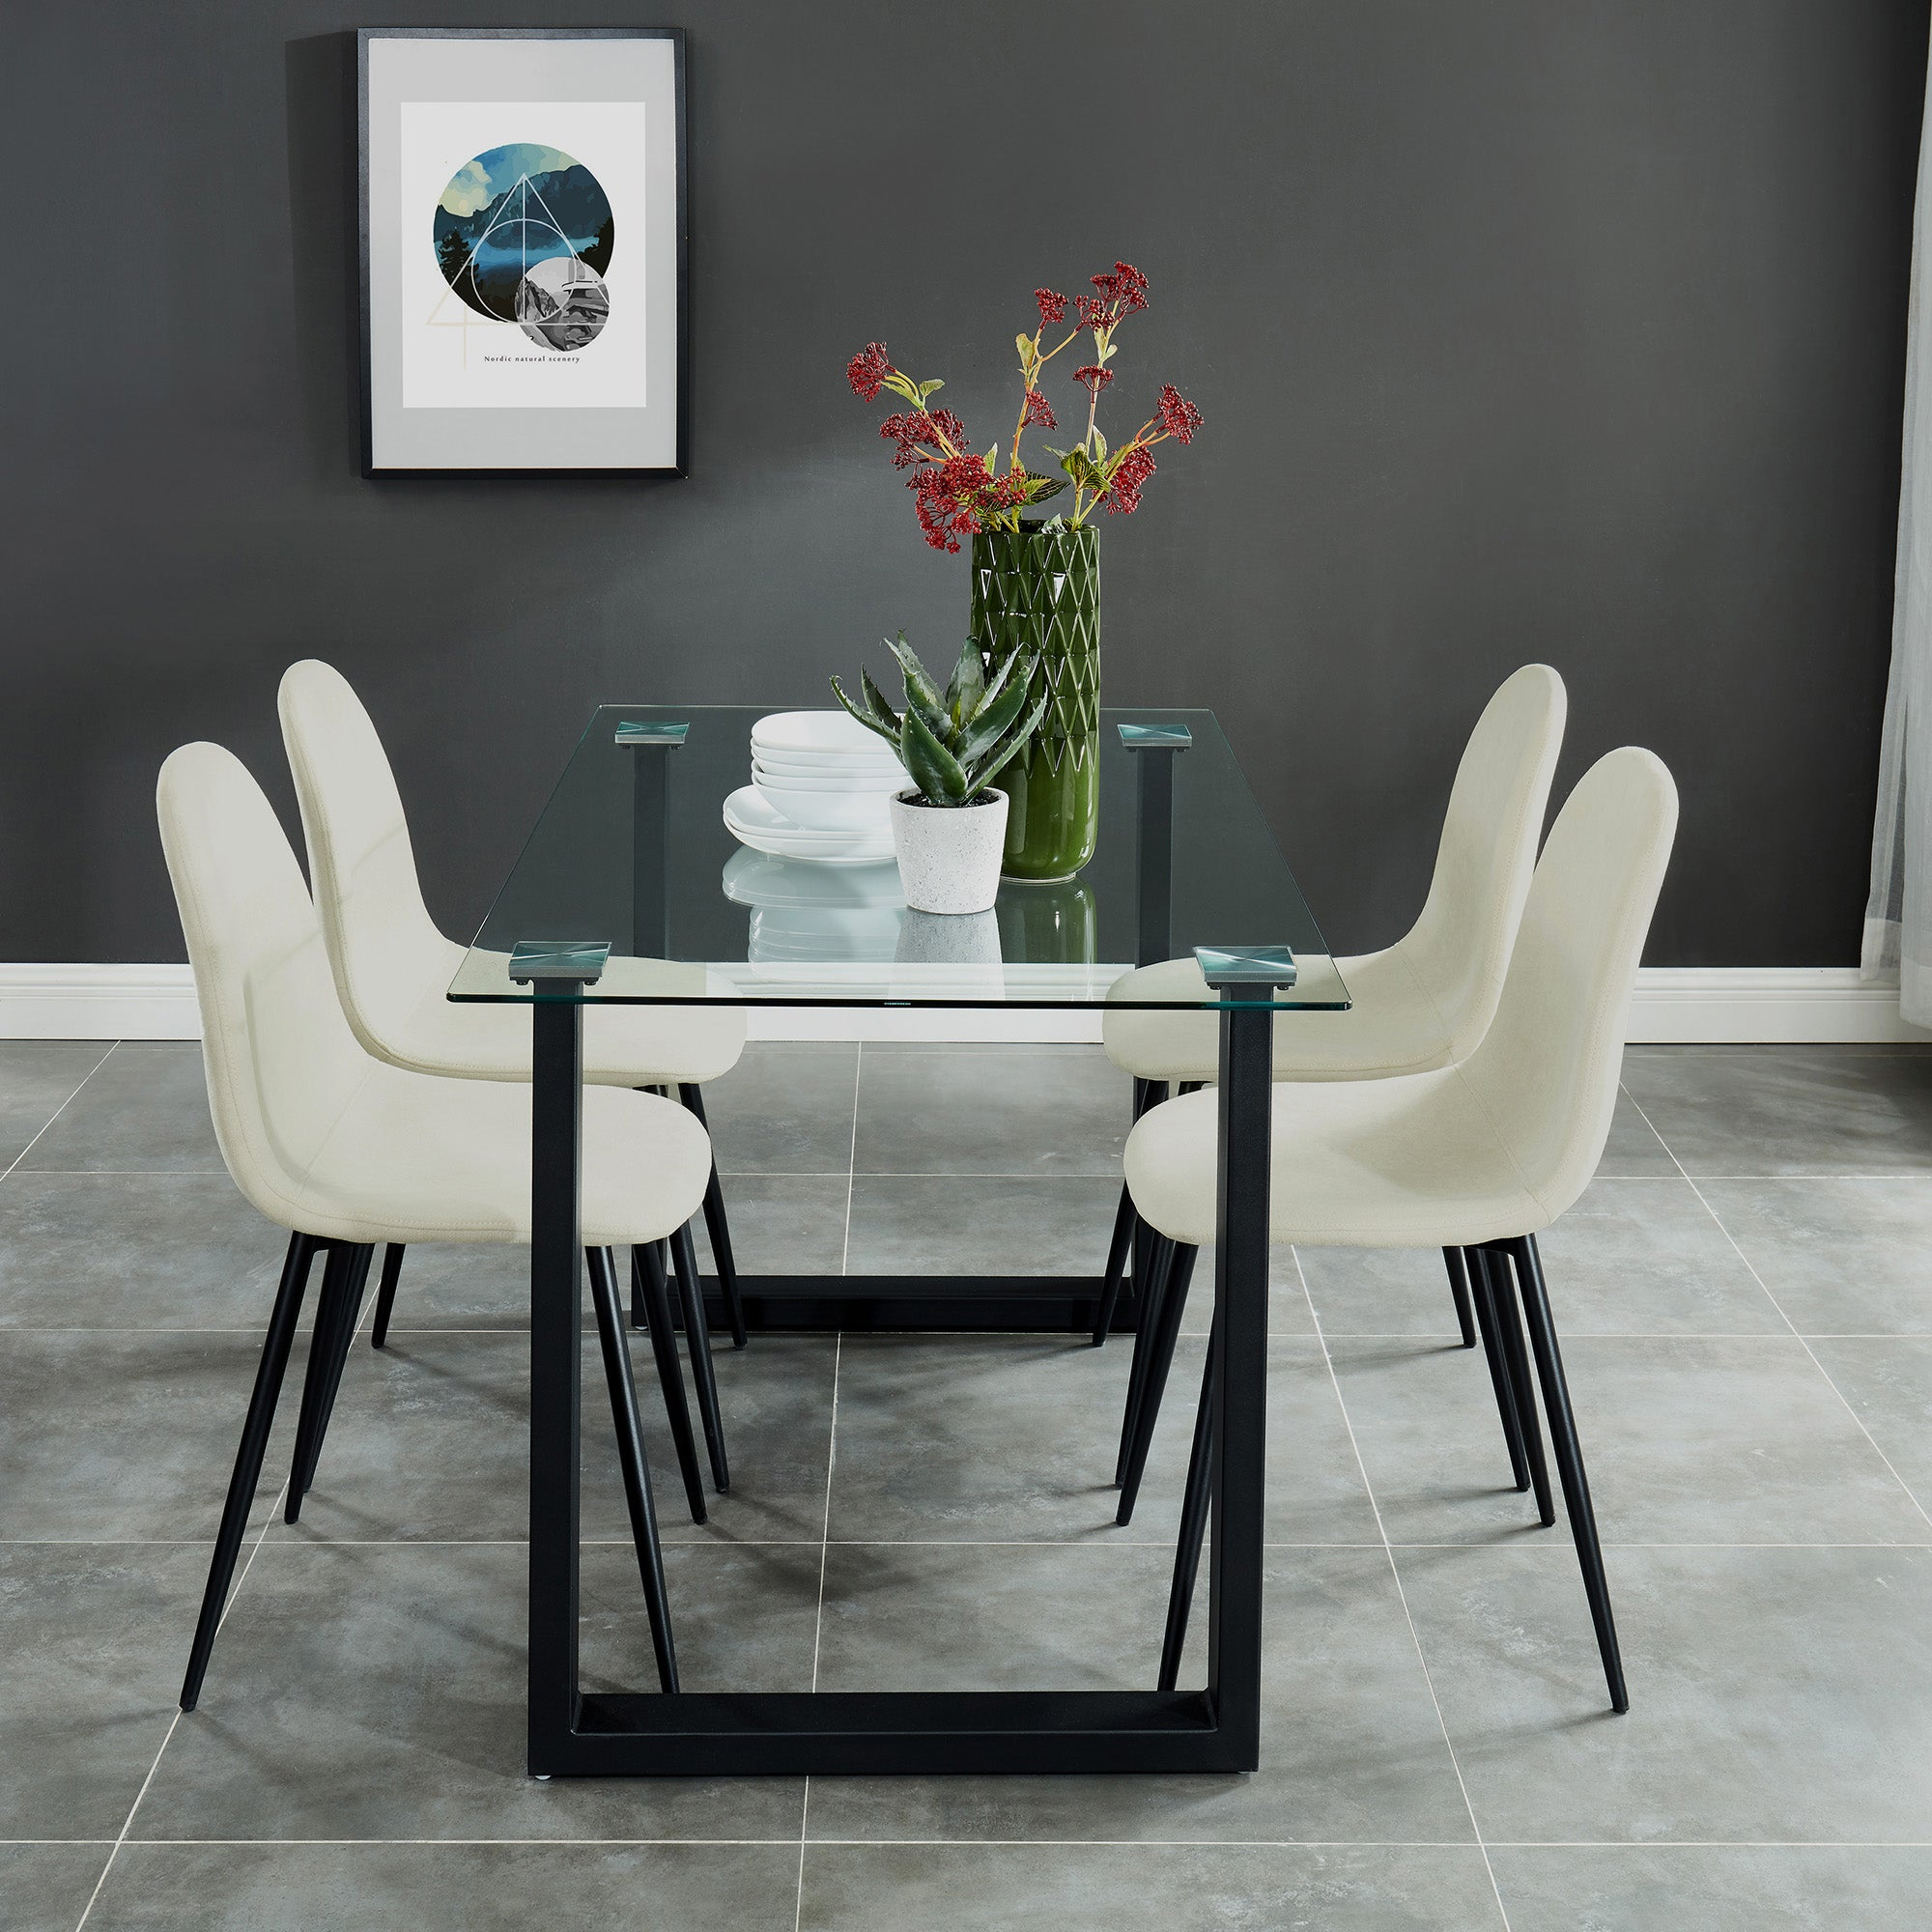 Andy/Olly 5pc Dining Set, Black/Beige